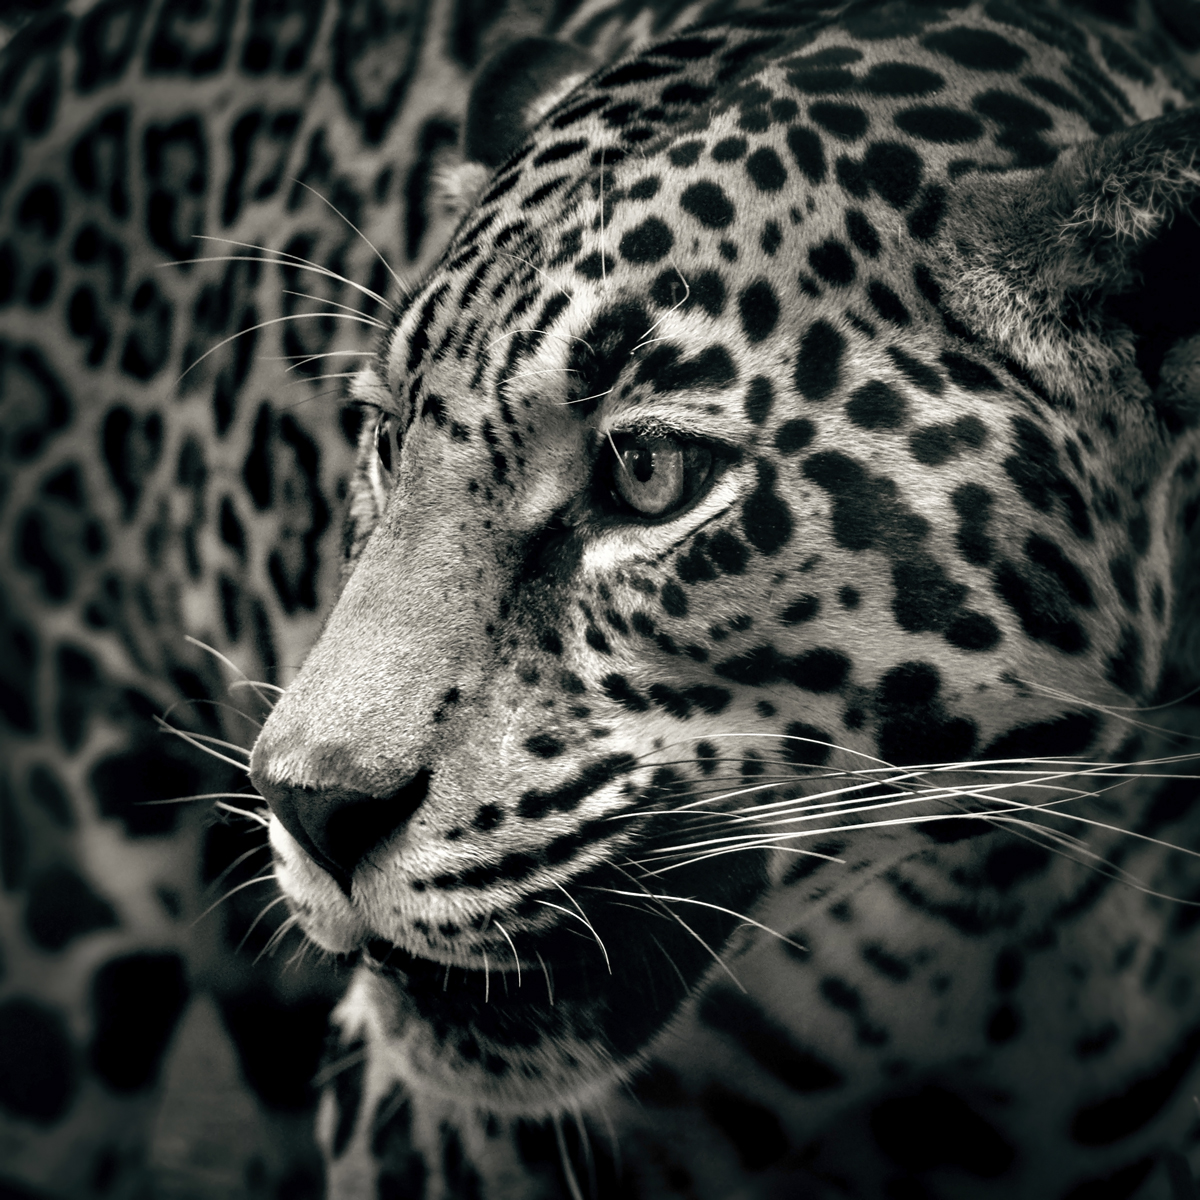 Black & White Jaguar